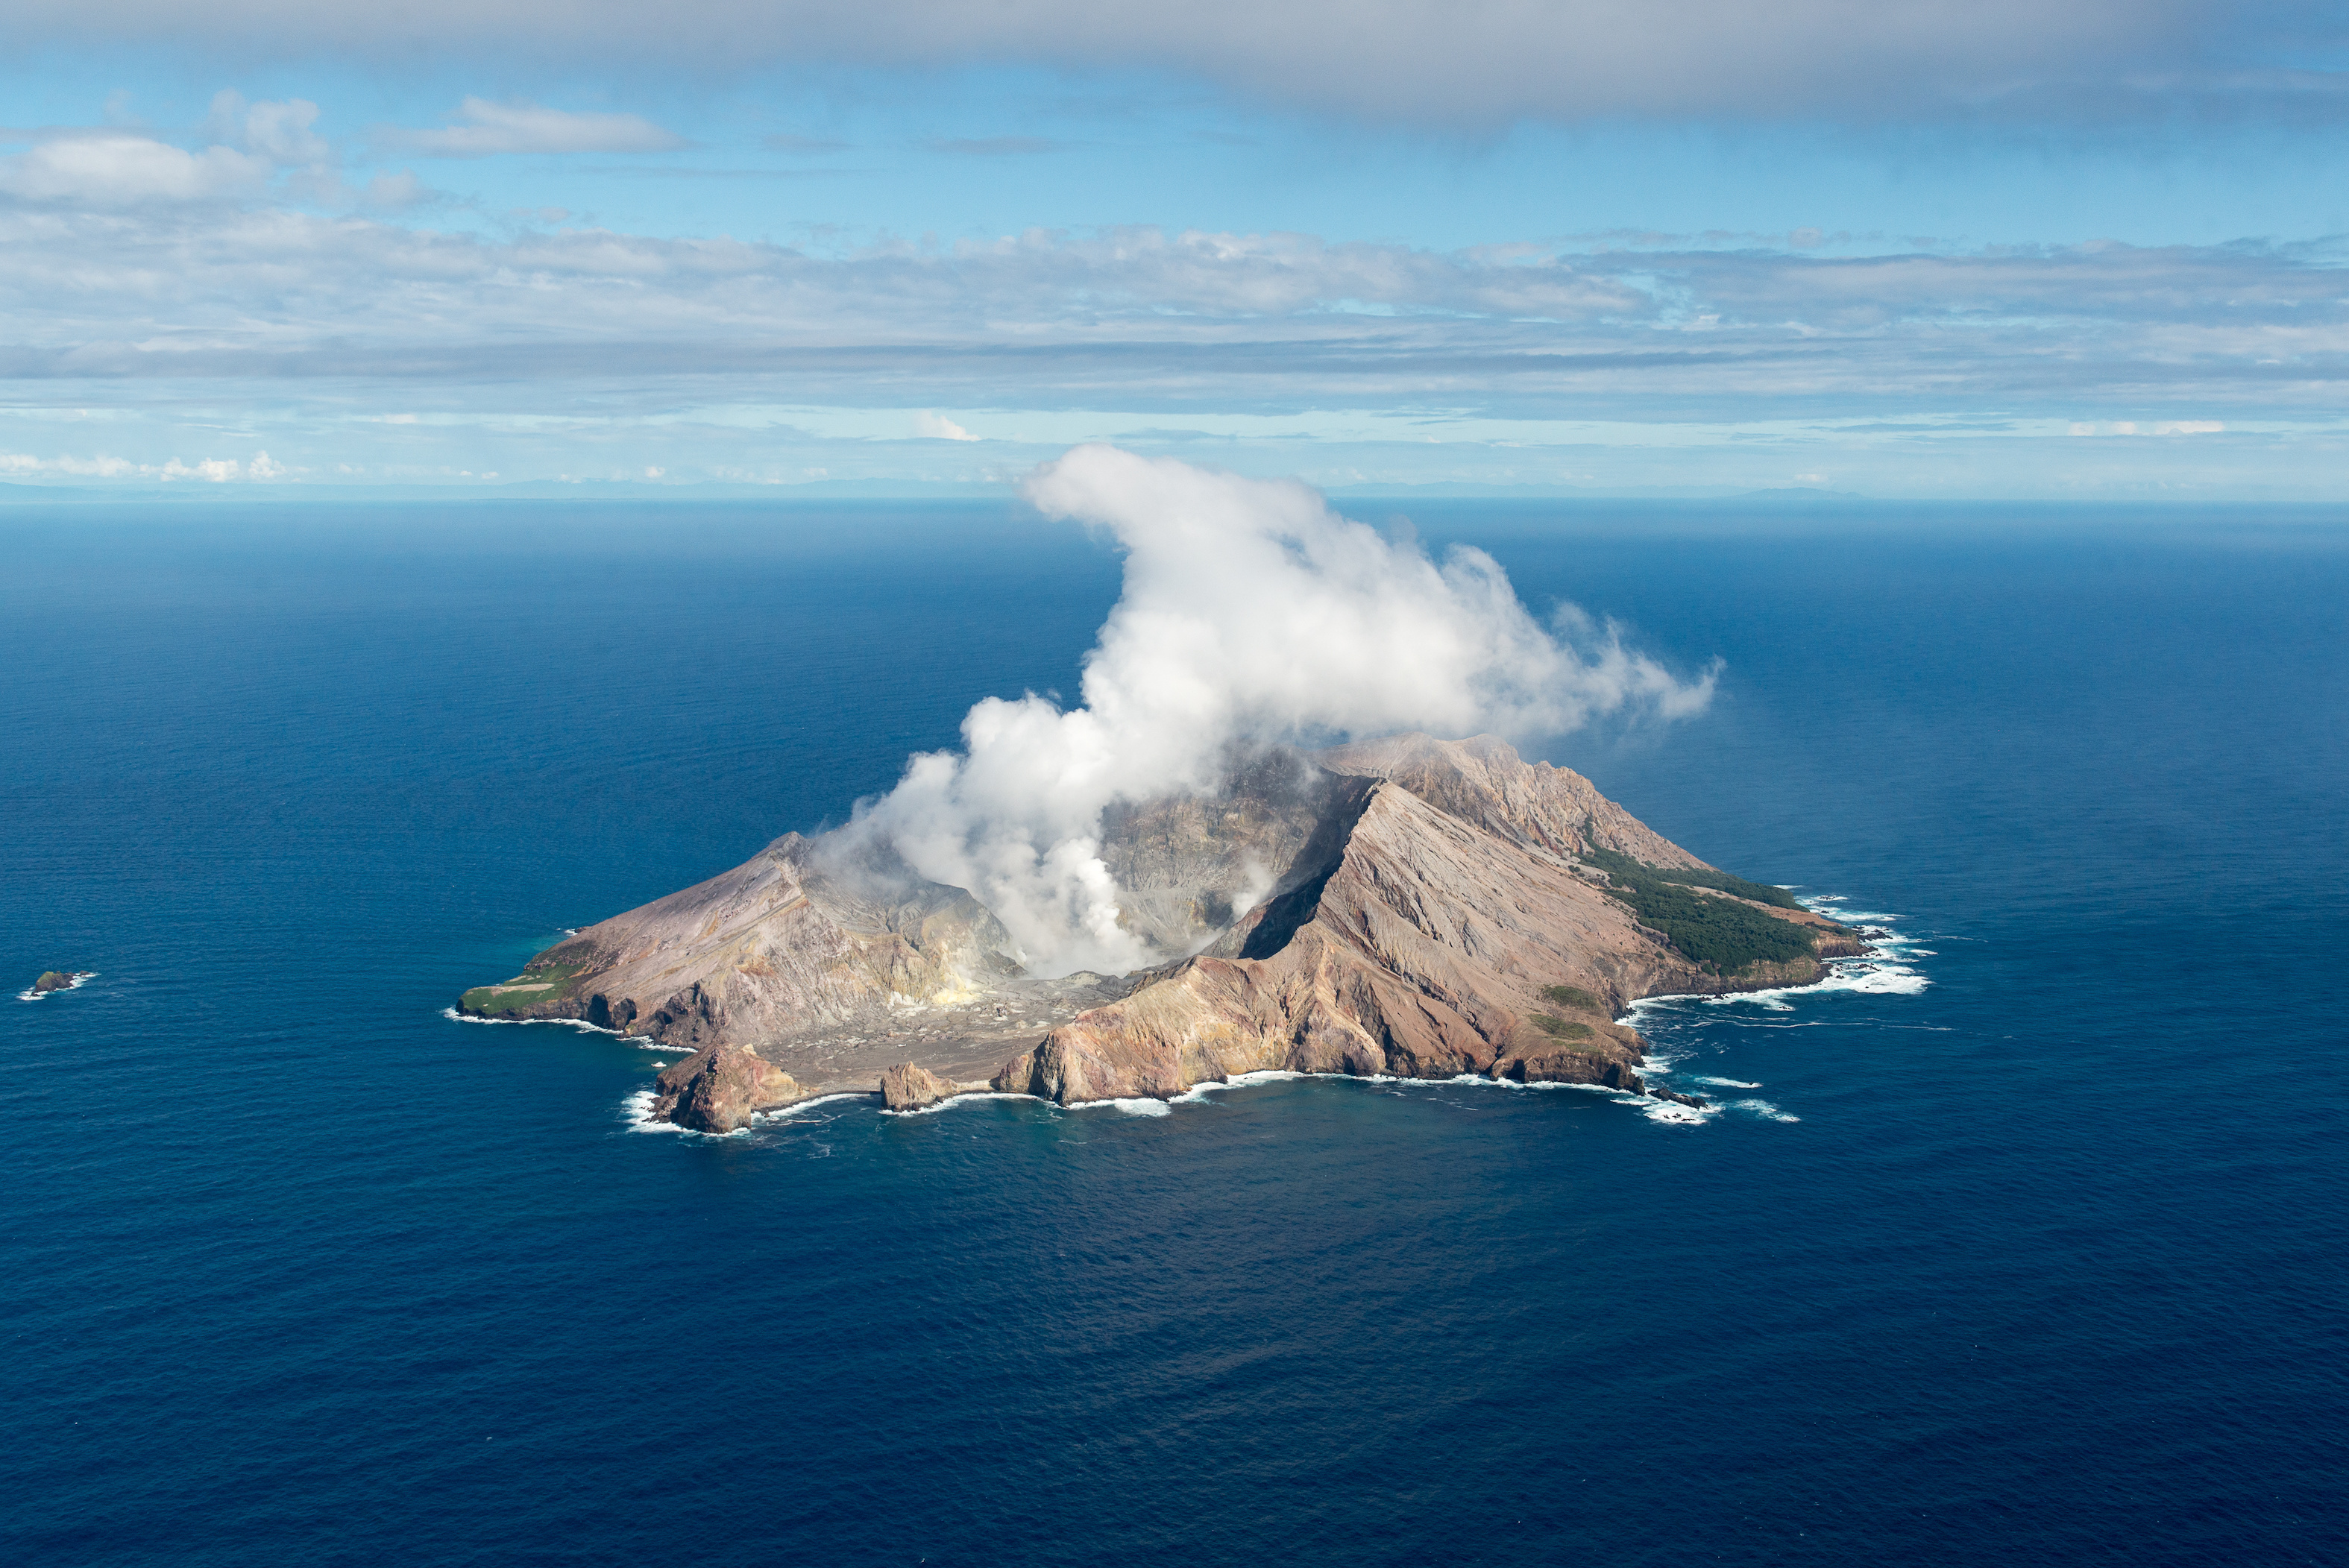 How long will a volcanic island live?